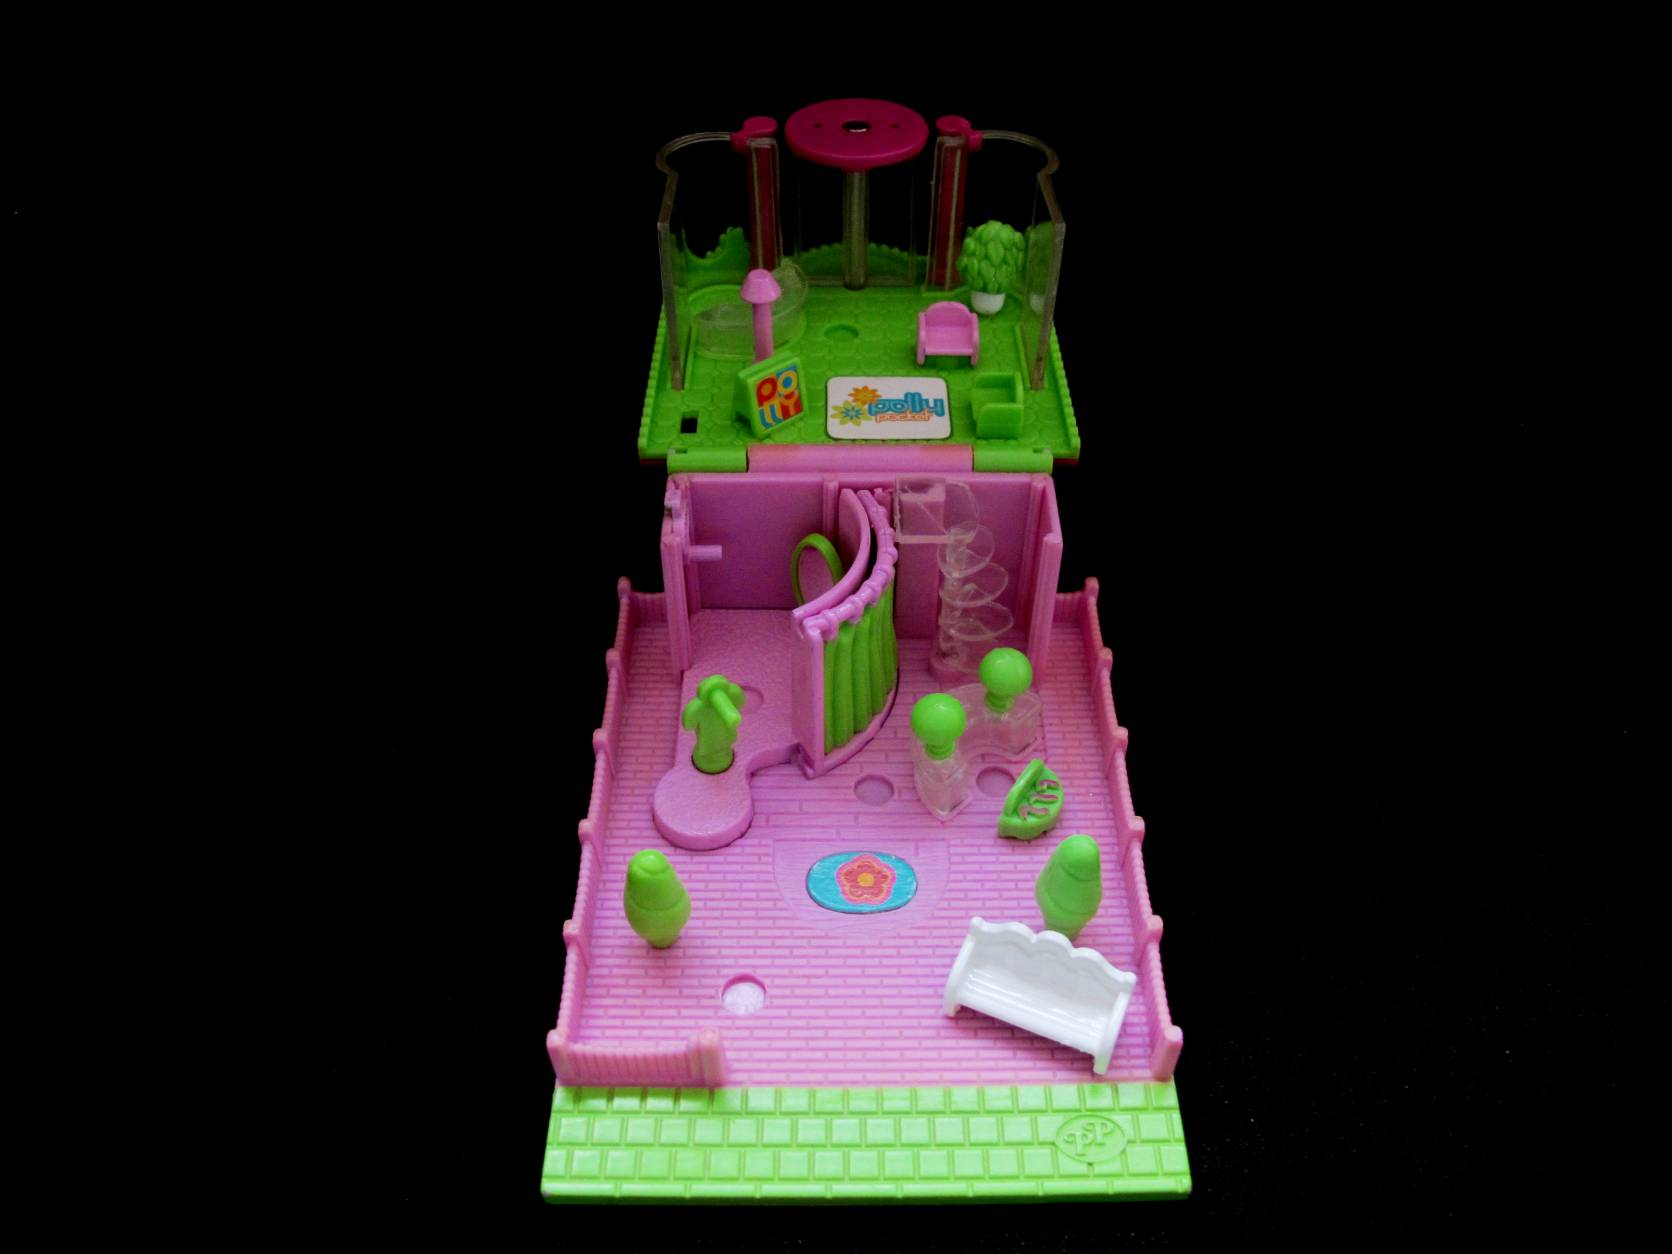 2006 Dress Shop Polly Pocket